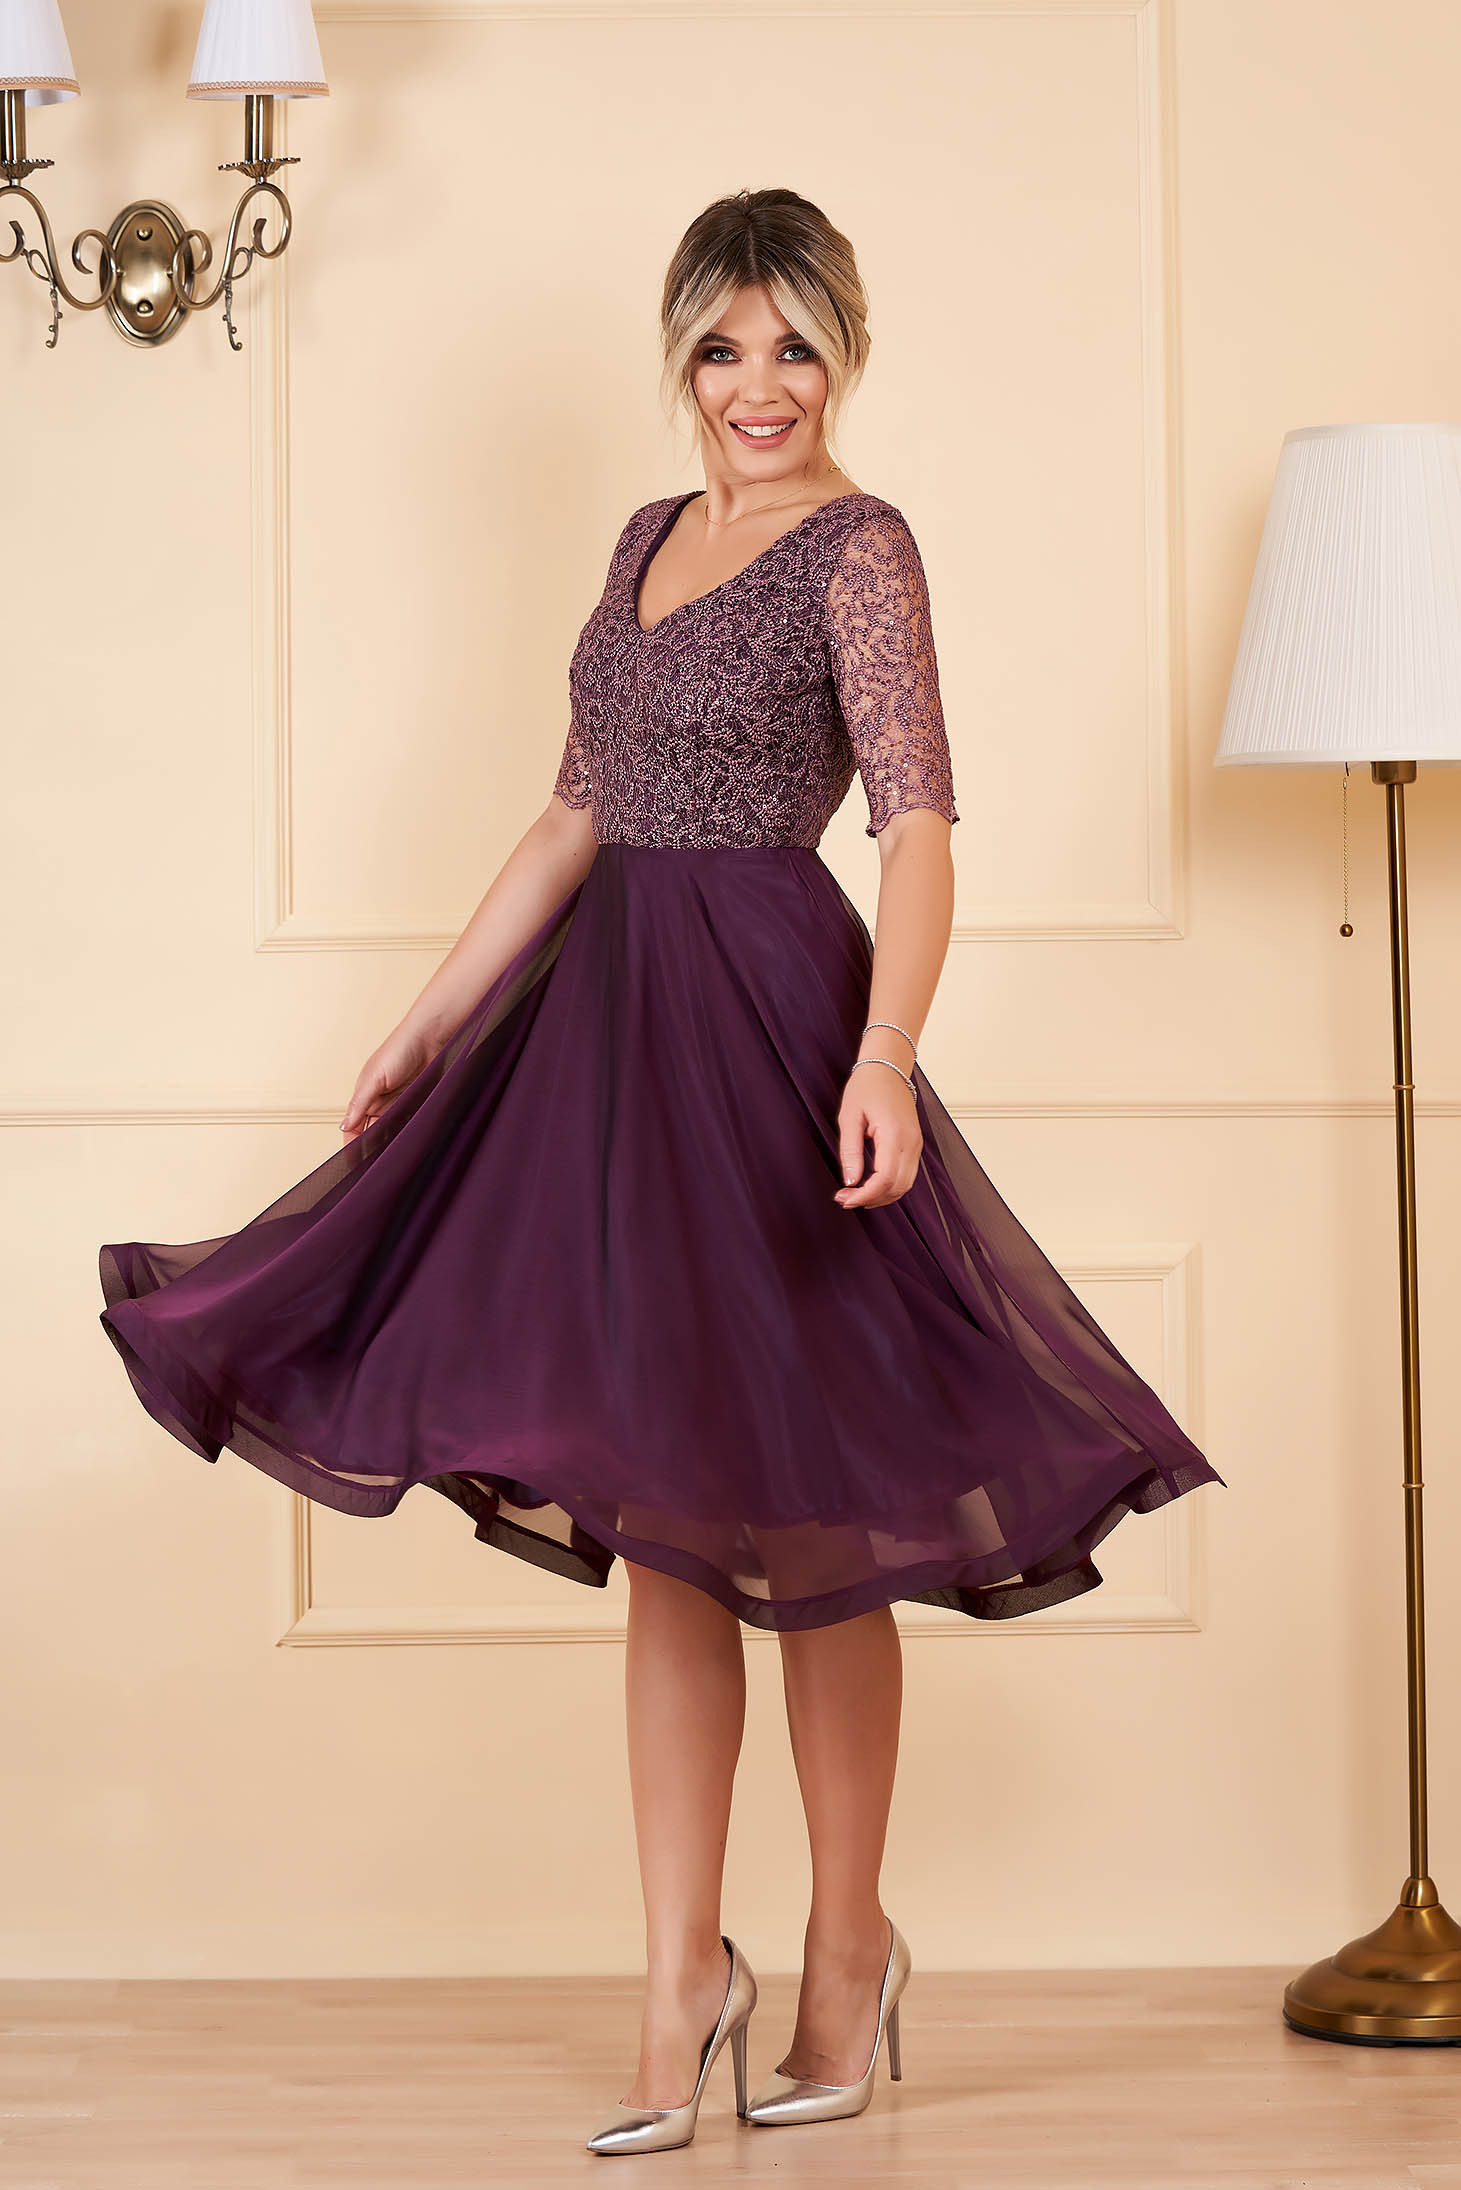 StarShinerS midi occasional cloche from veil fabric with sequins with v-neckline short sleeves purple dress